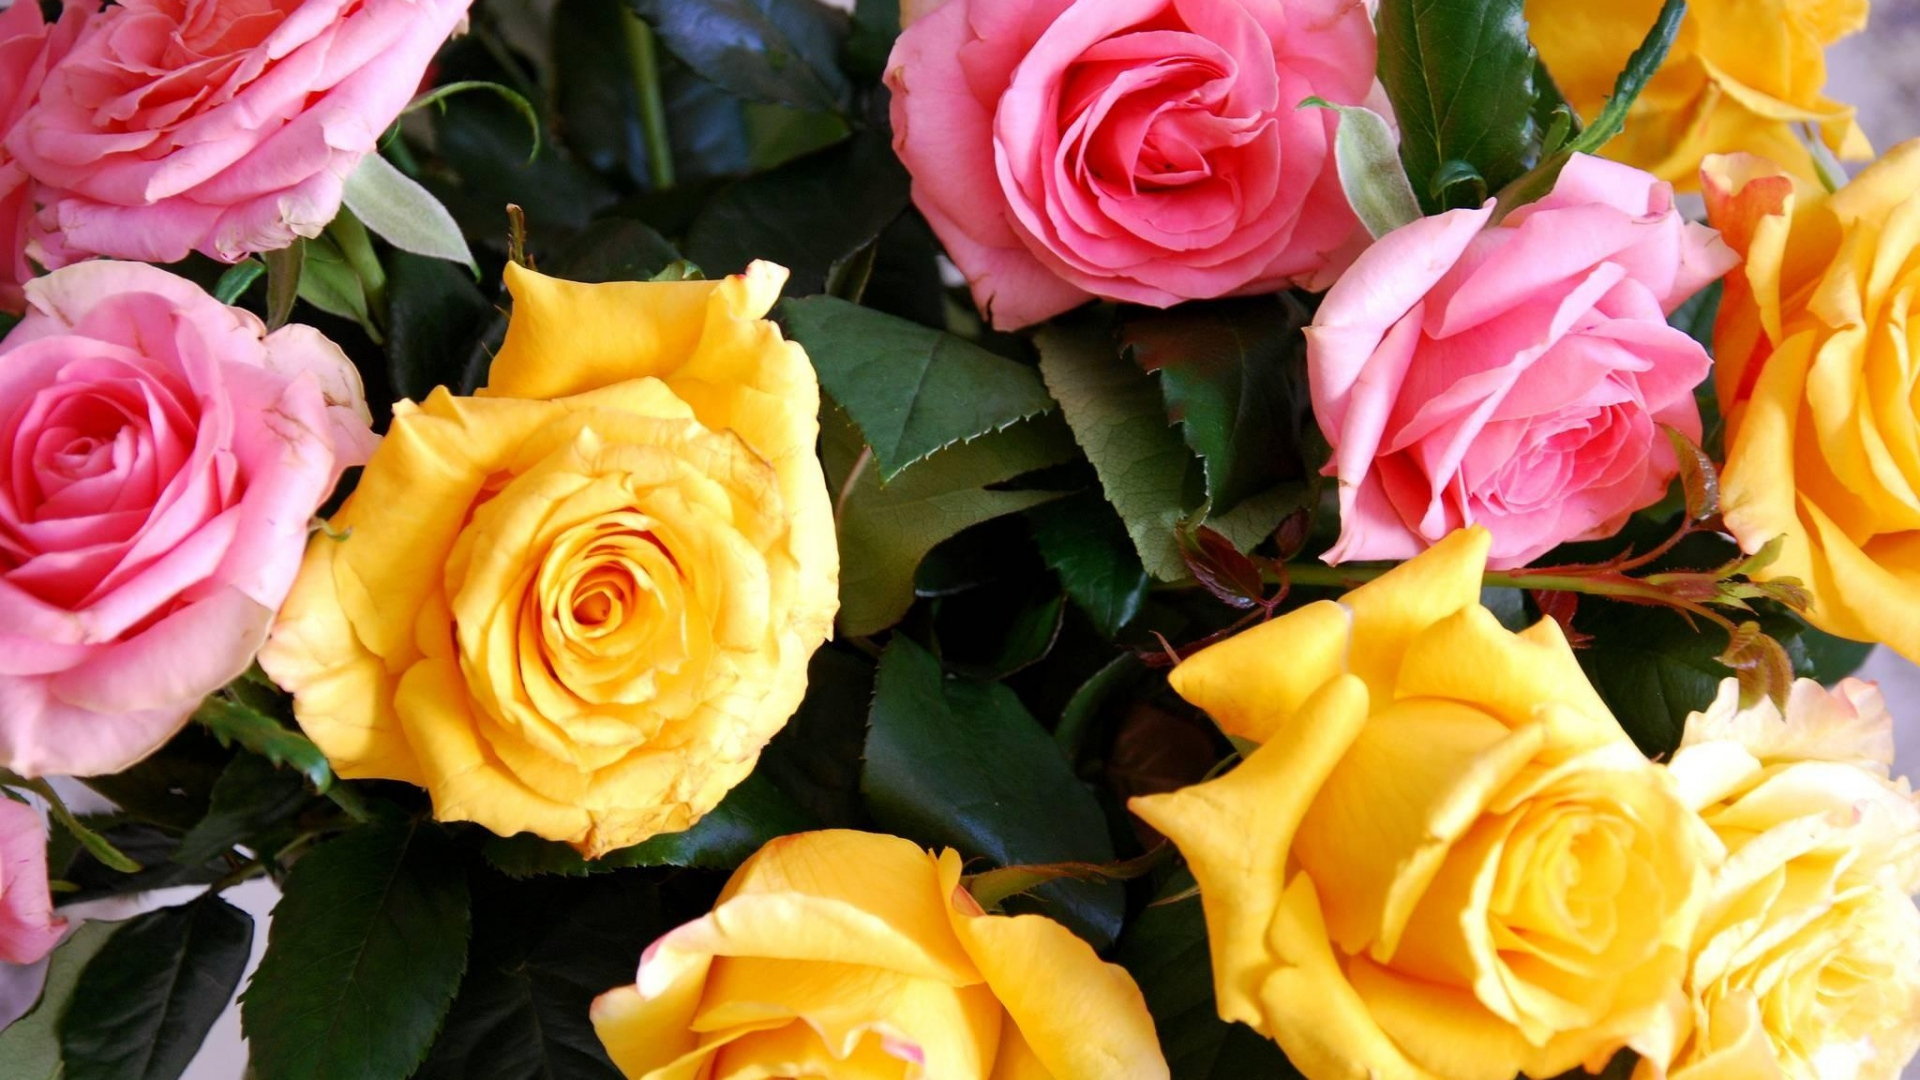 Download wallpaper 1920x1080 roses yellow pink bouquet buds full roses yellow pink mightylinksfo